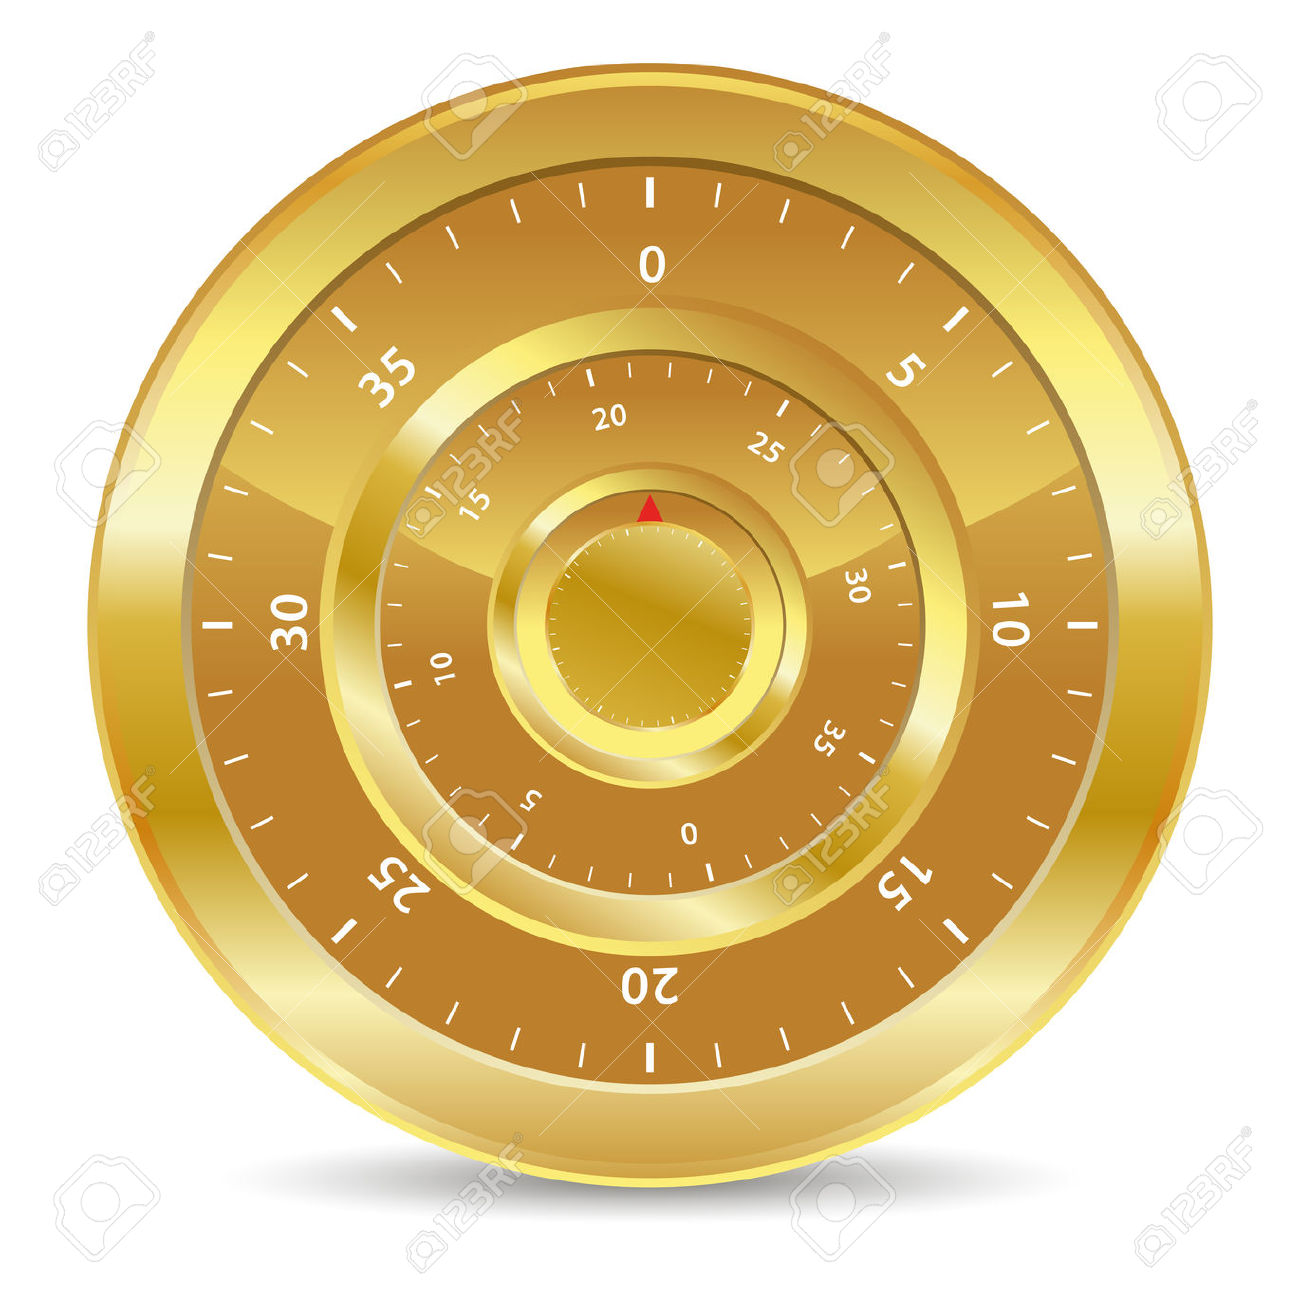 Gold Combination Lock For Safe Values Royalty Free Cliparts.